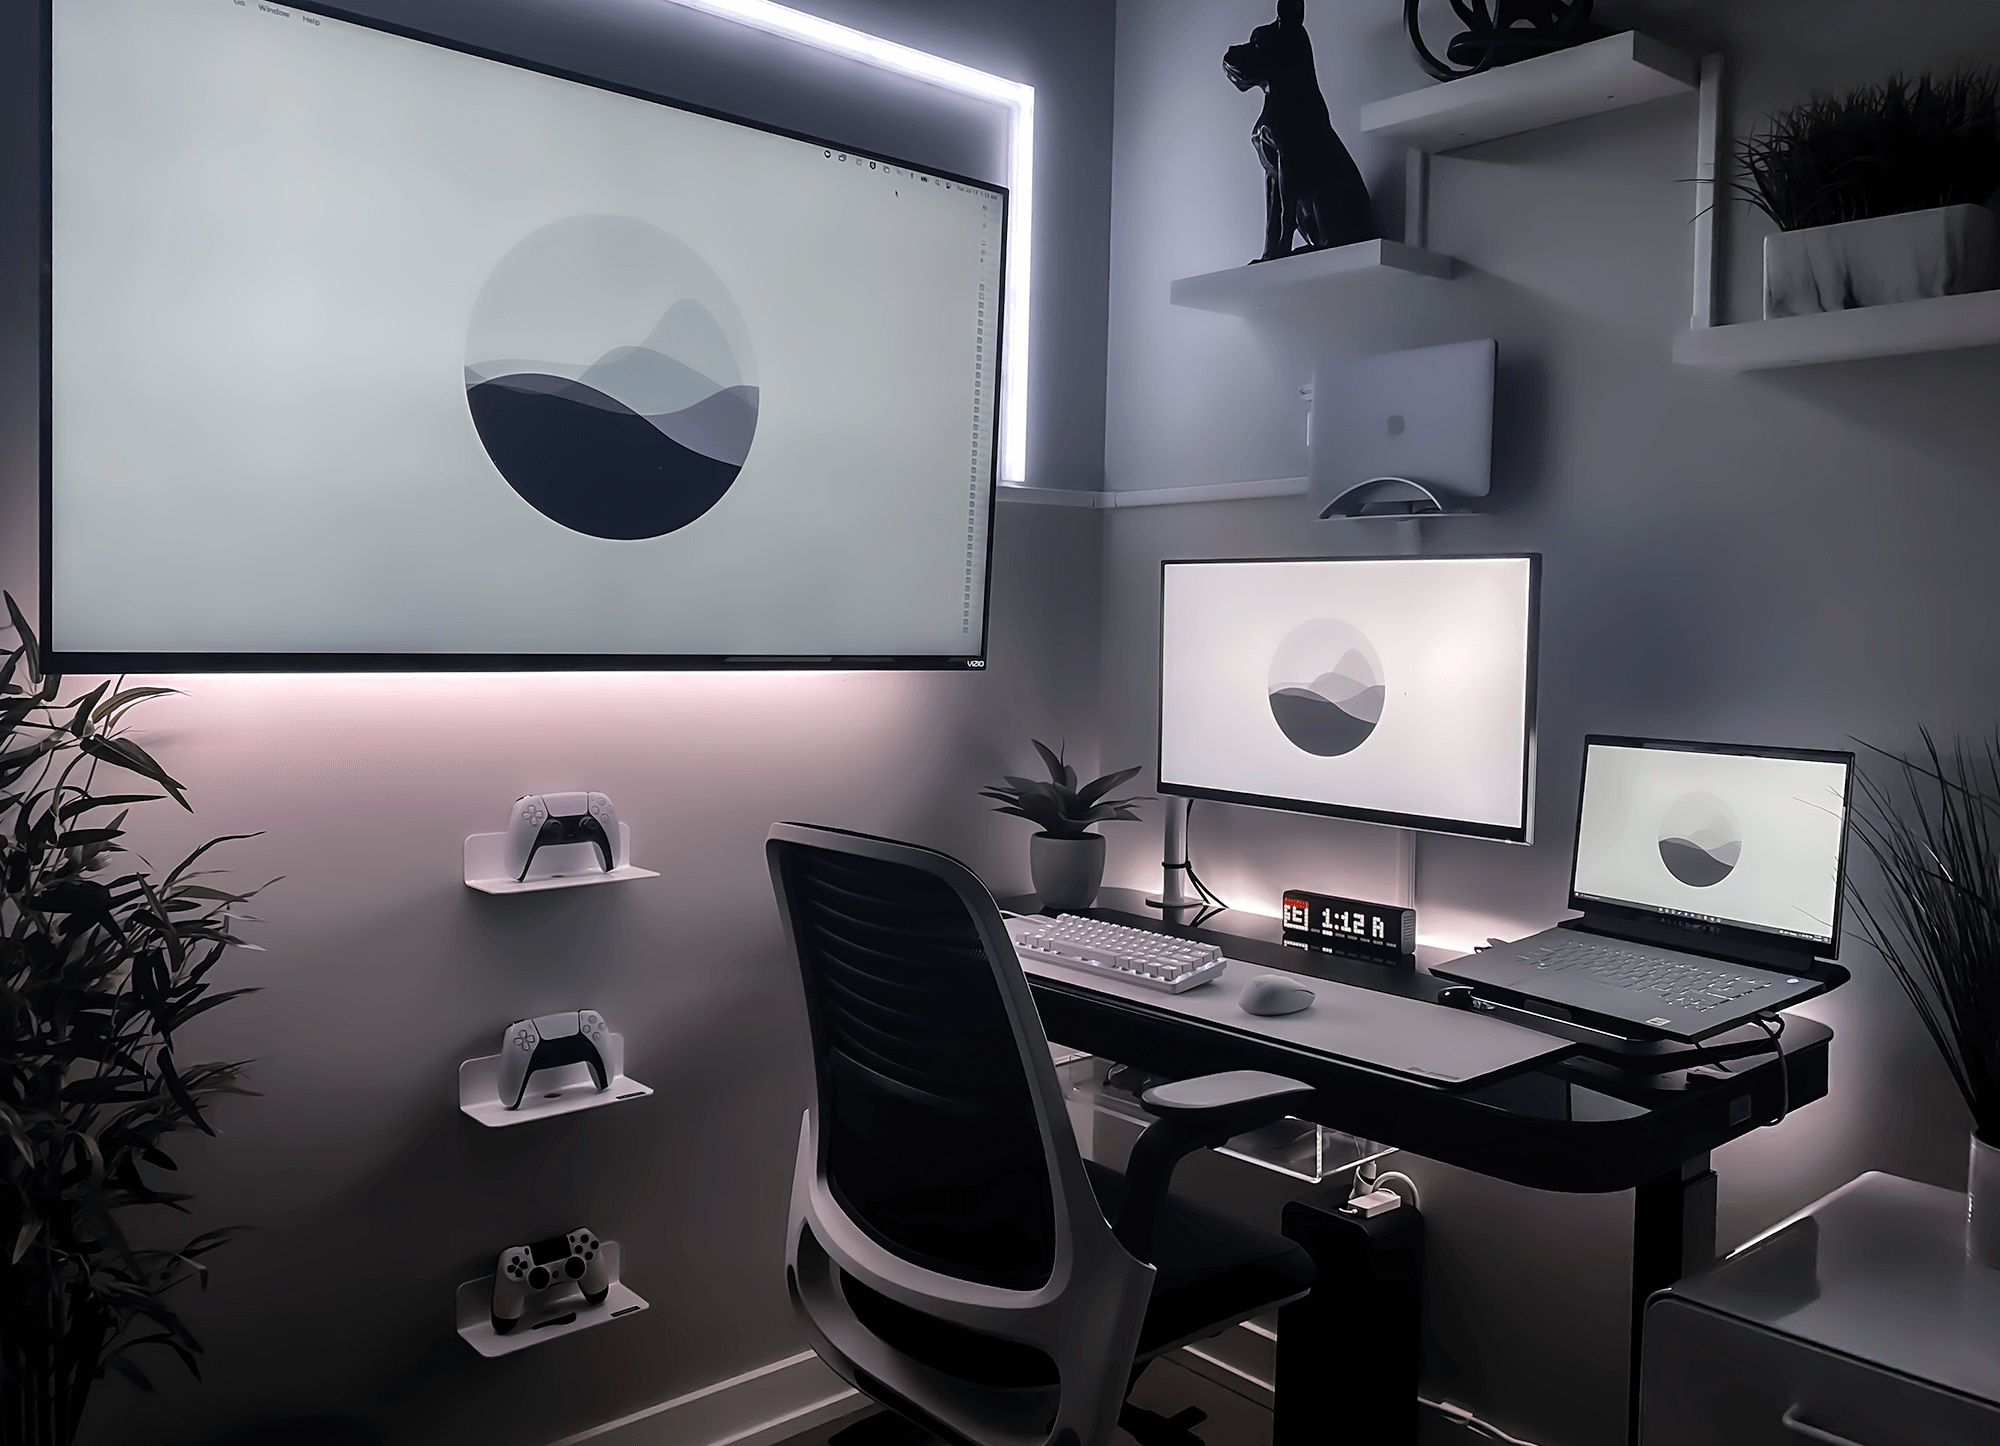 Alex' mimimalist home office setup in black and white